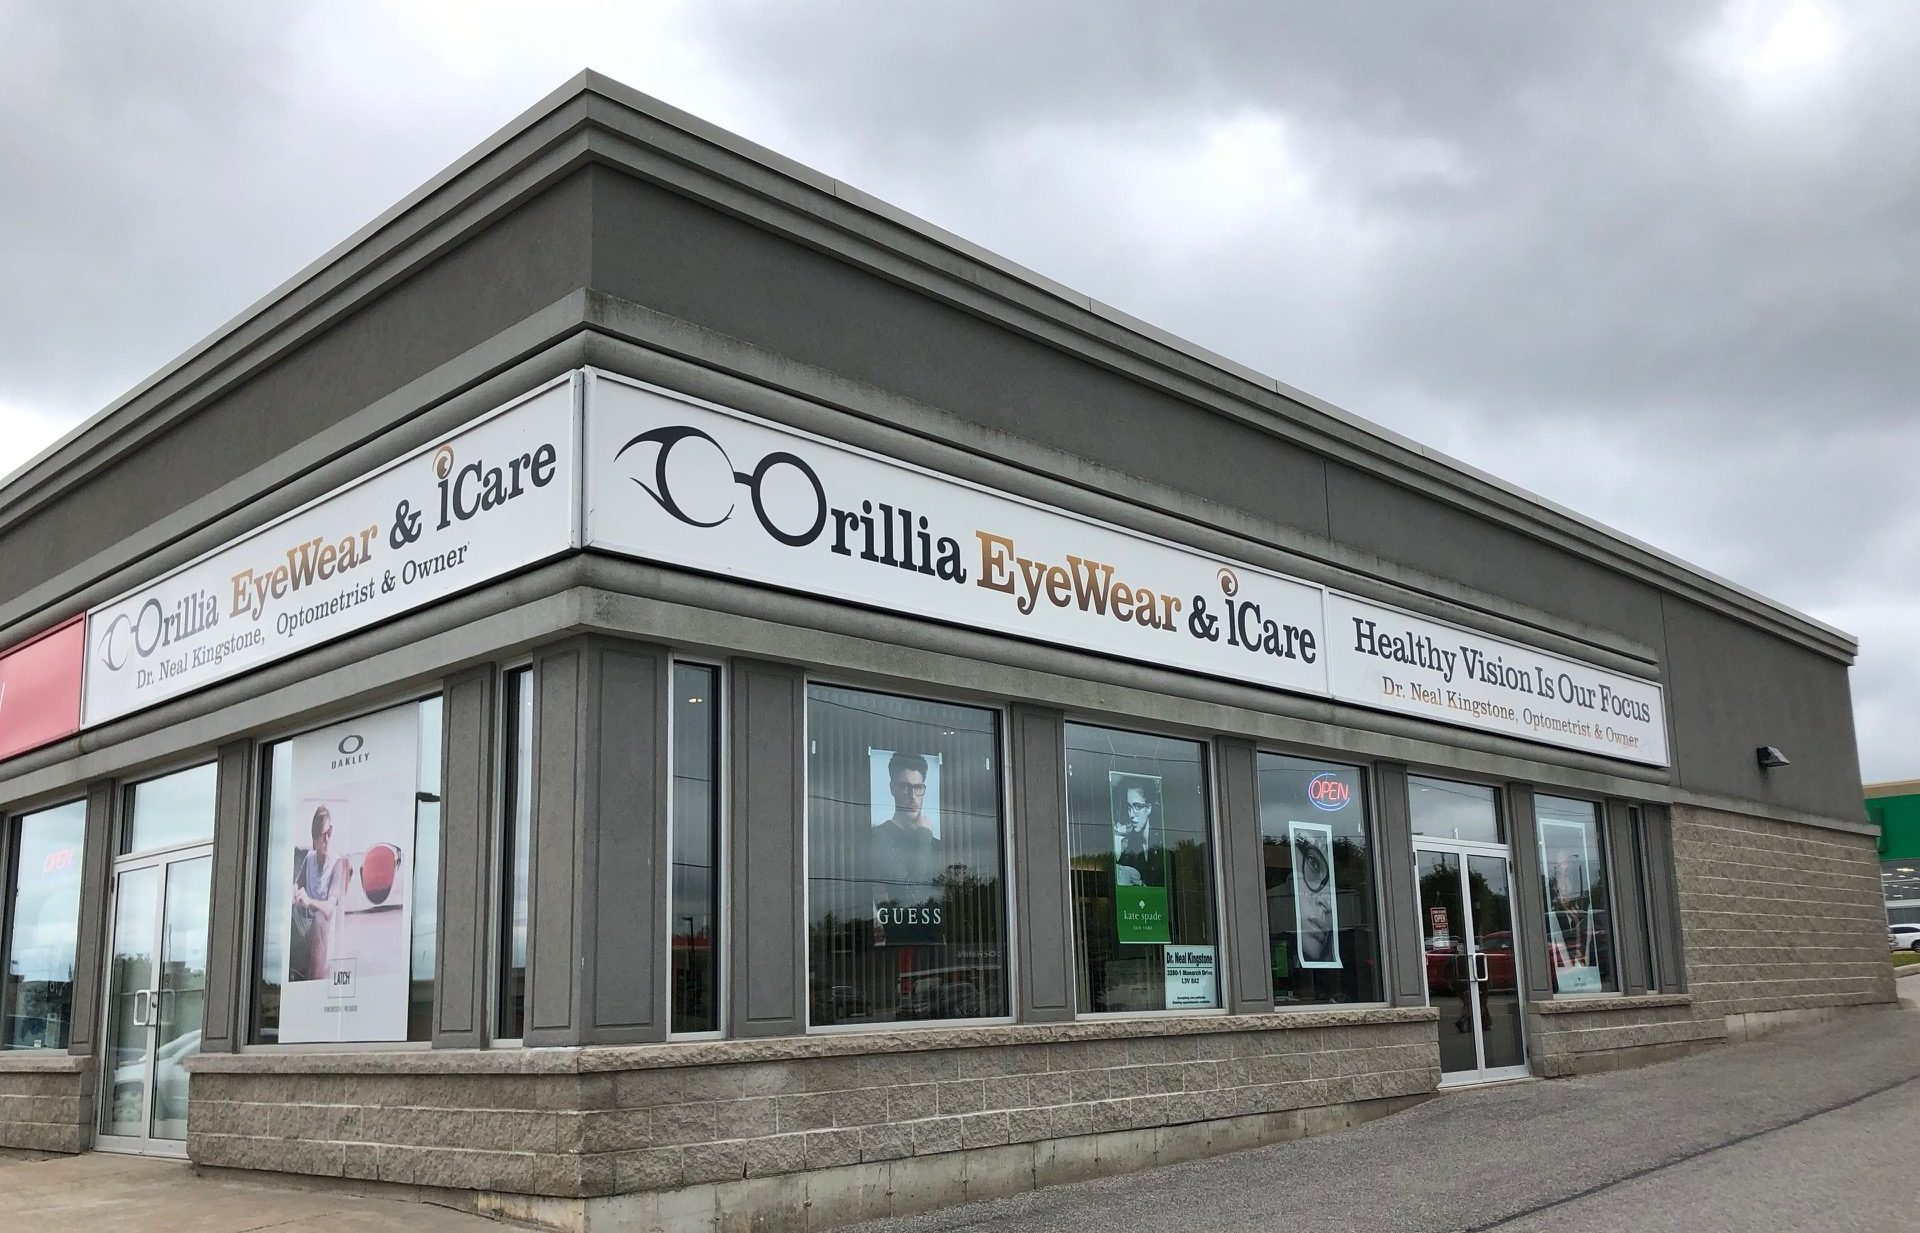 Outside of Orillia Eyewear & iCare